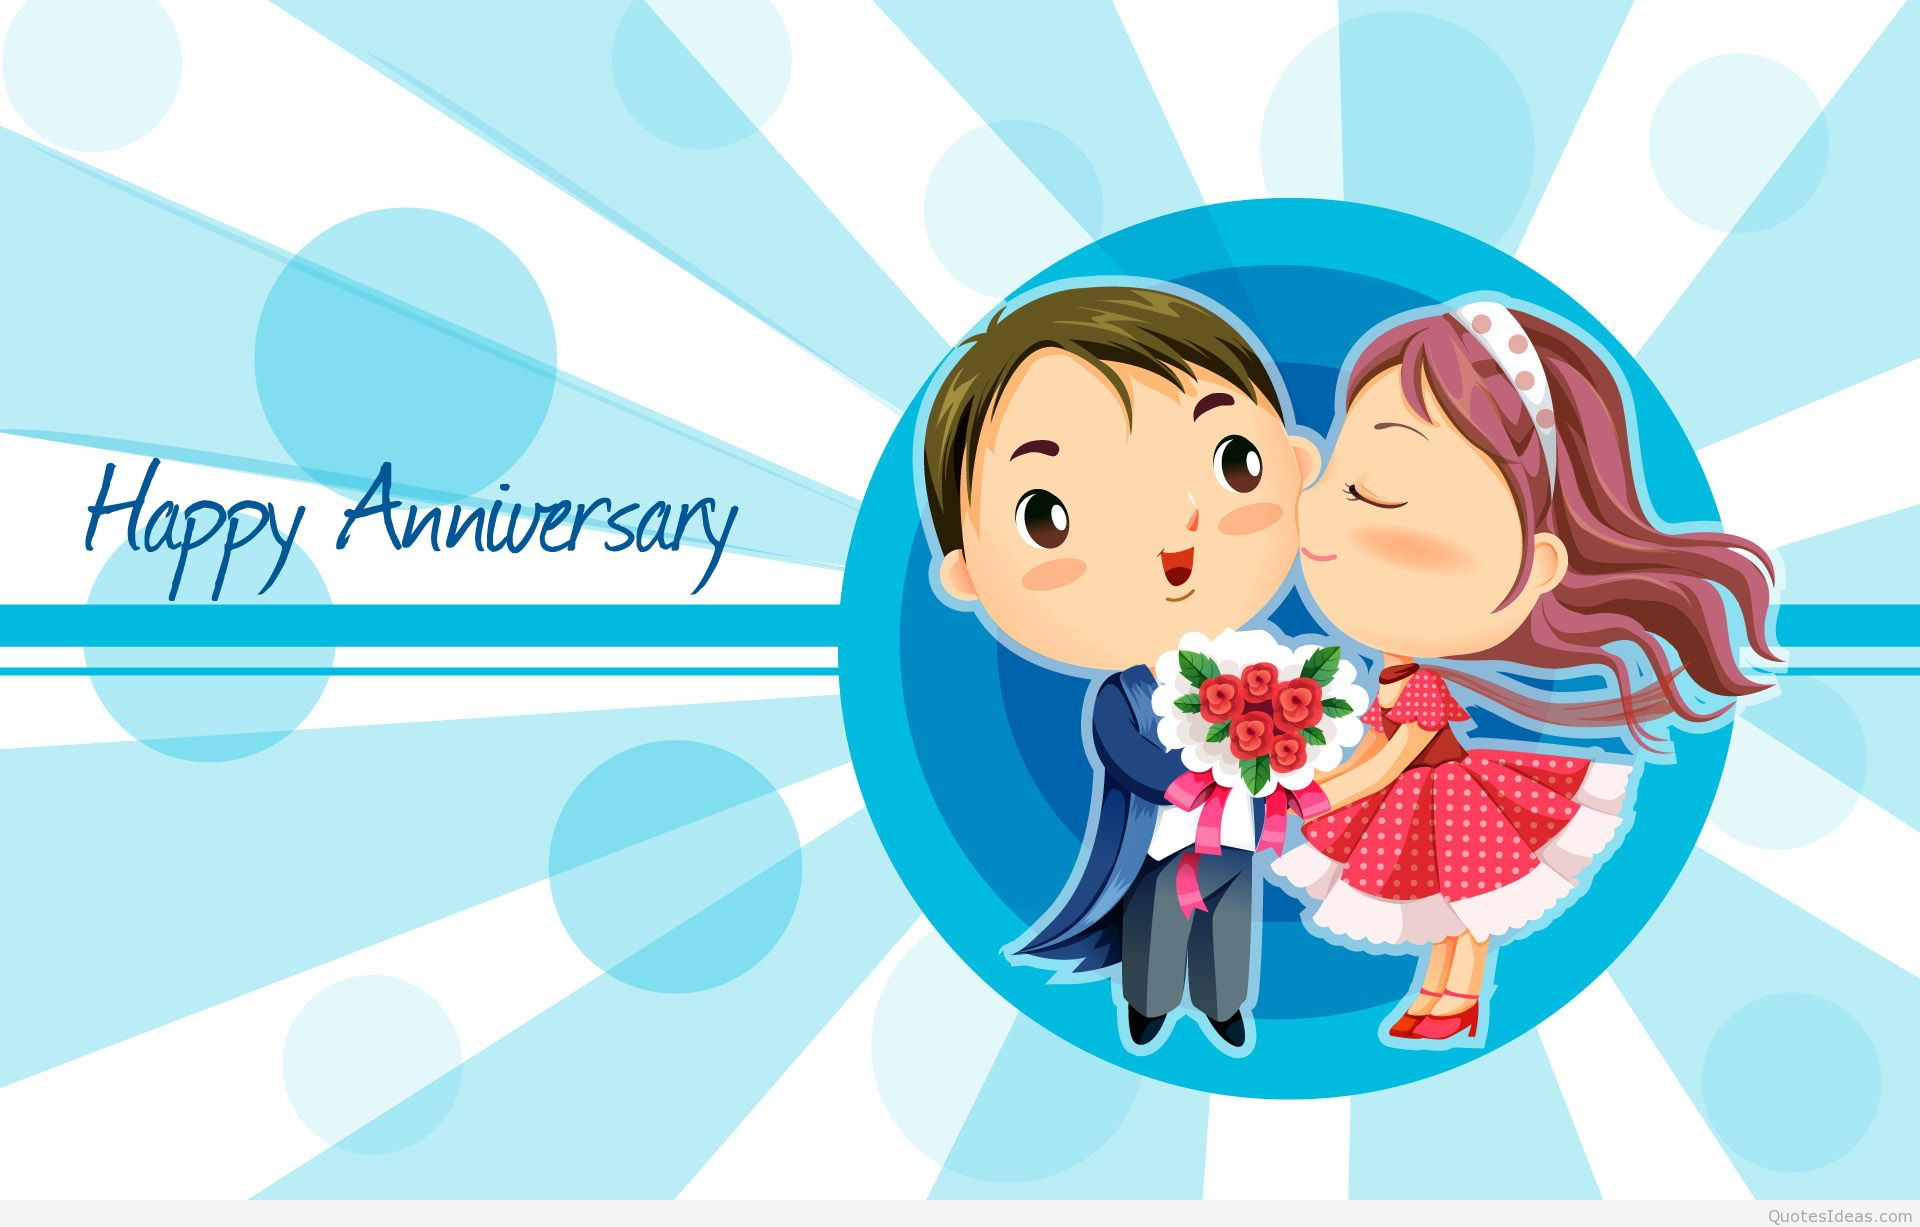 Happy Anniversary Images Wallpapers Download   iEnglish Status 1920x1227